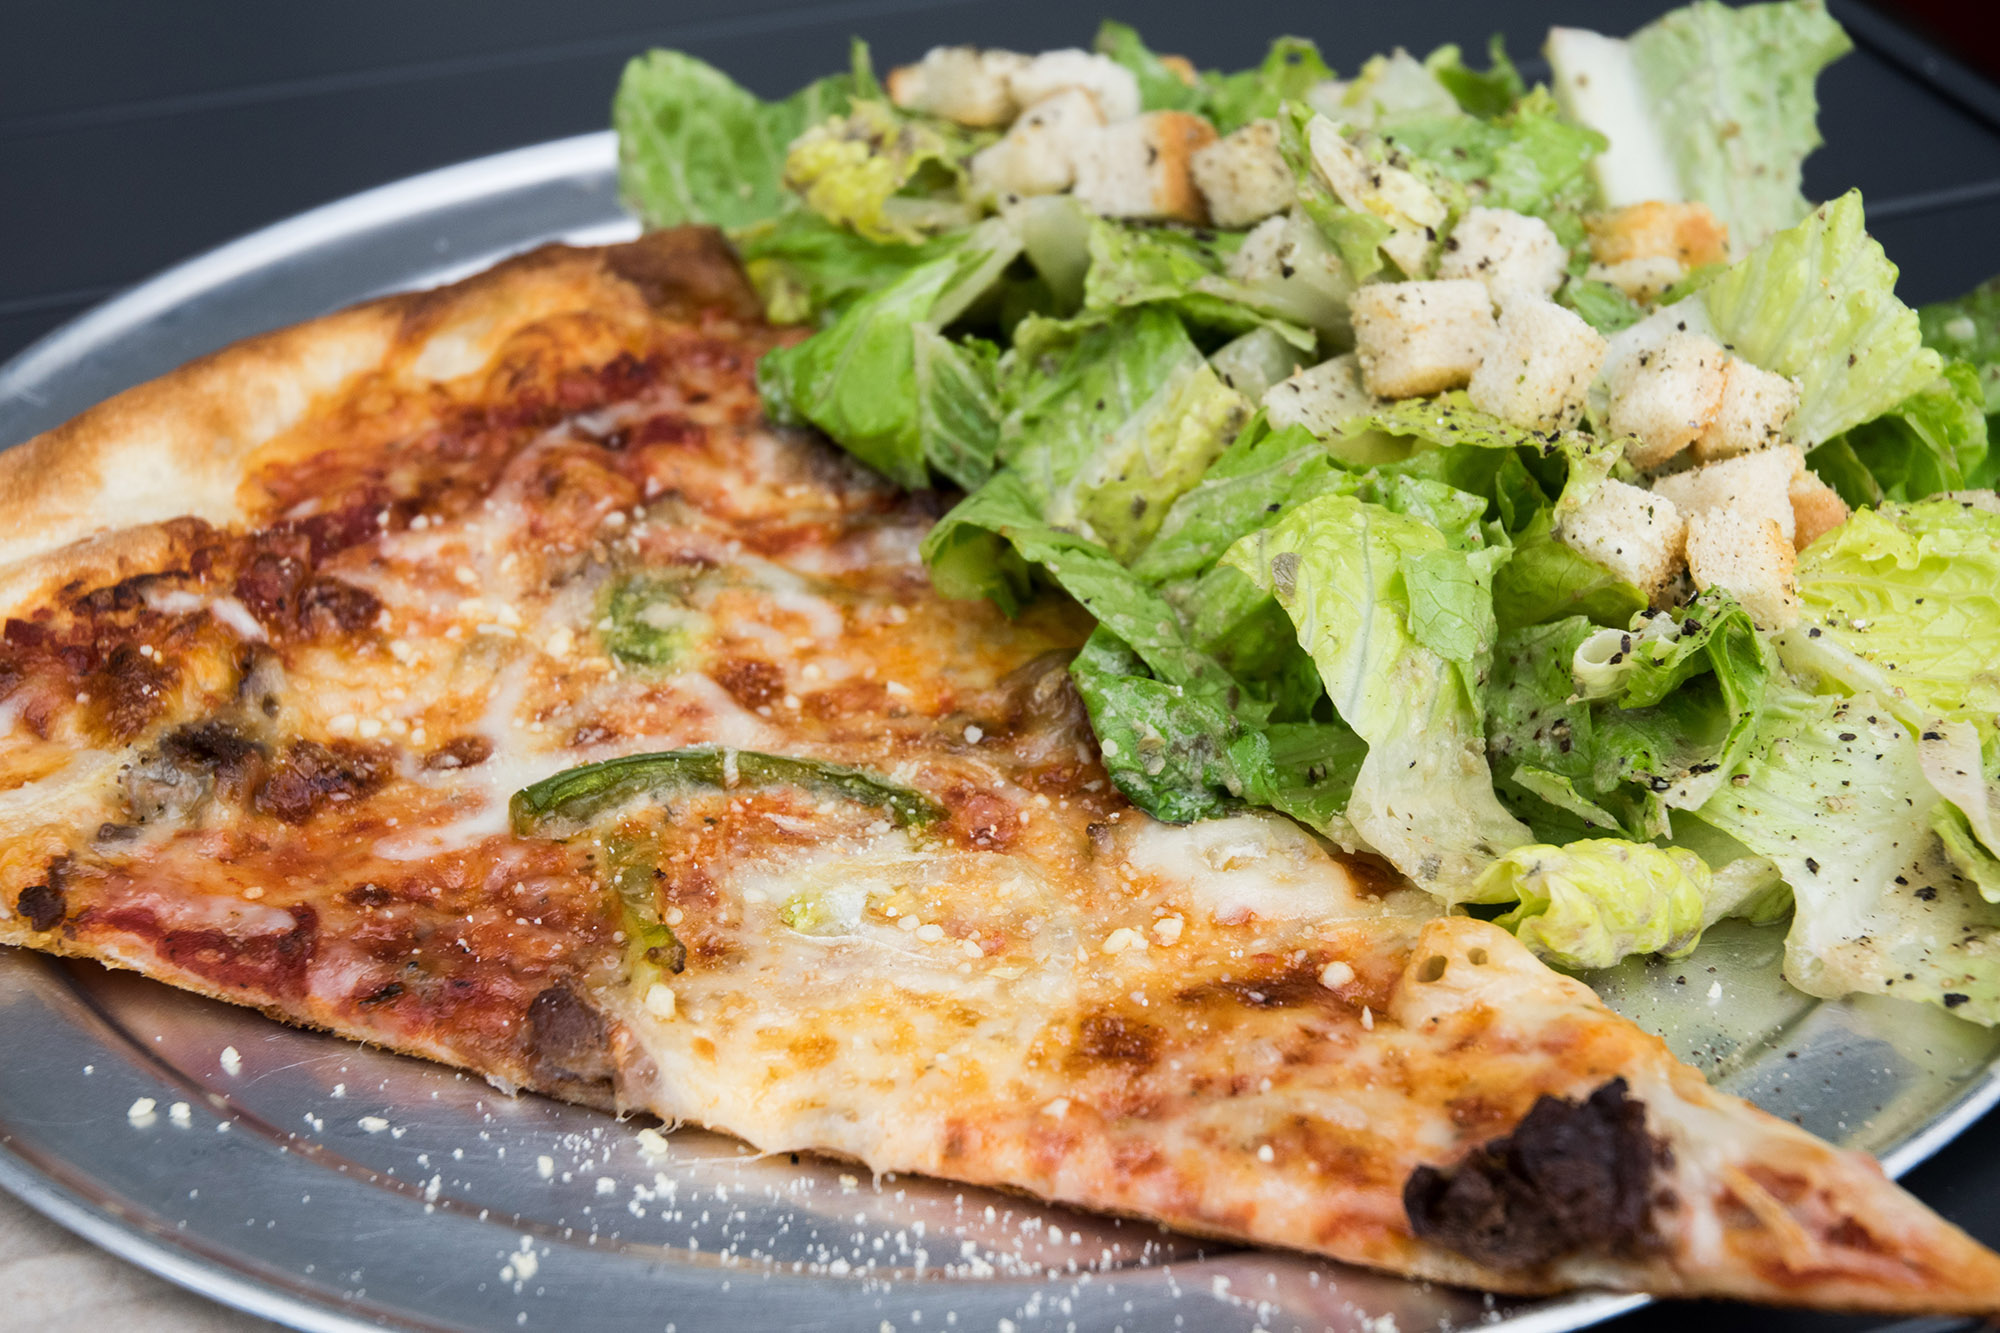 Sizzle Pie is the a new pizza spot in Capitol Hill that offers artisan pizzas and microbrewed beer.